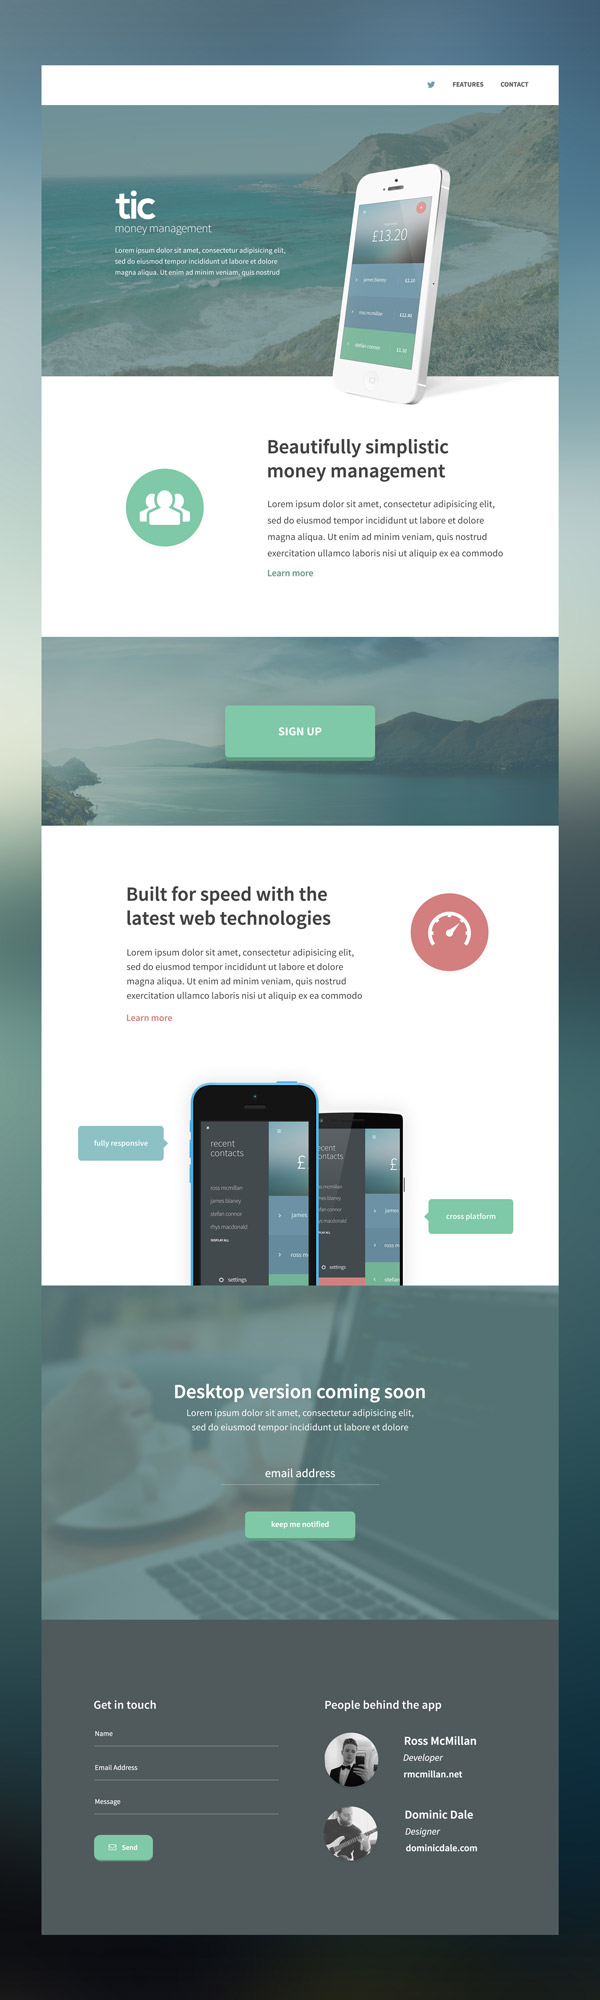 tic Website Design by Dominic Dale